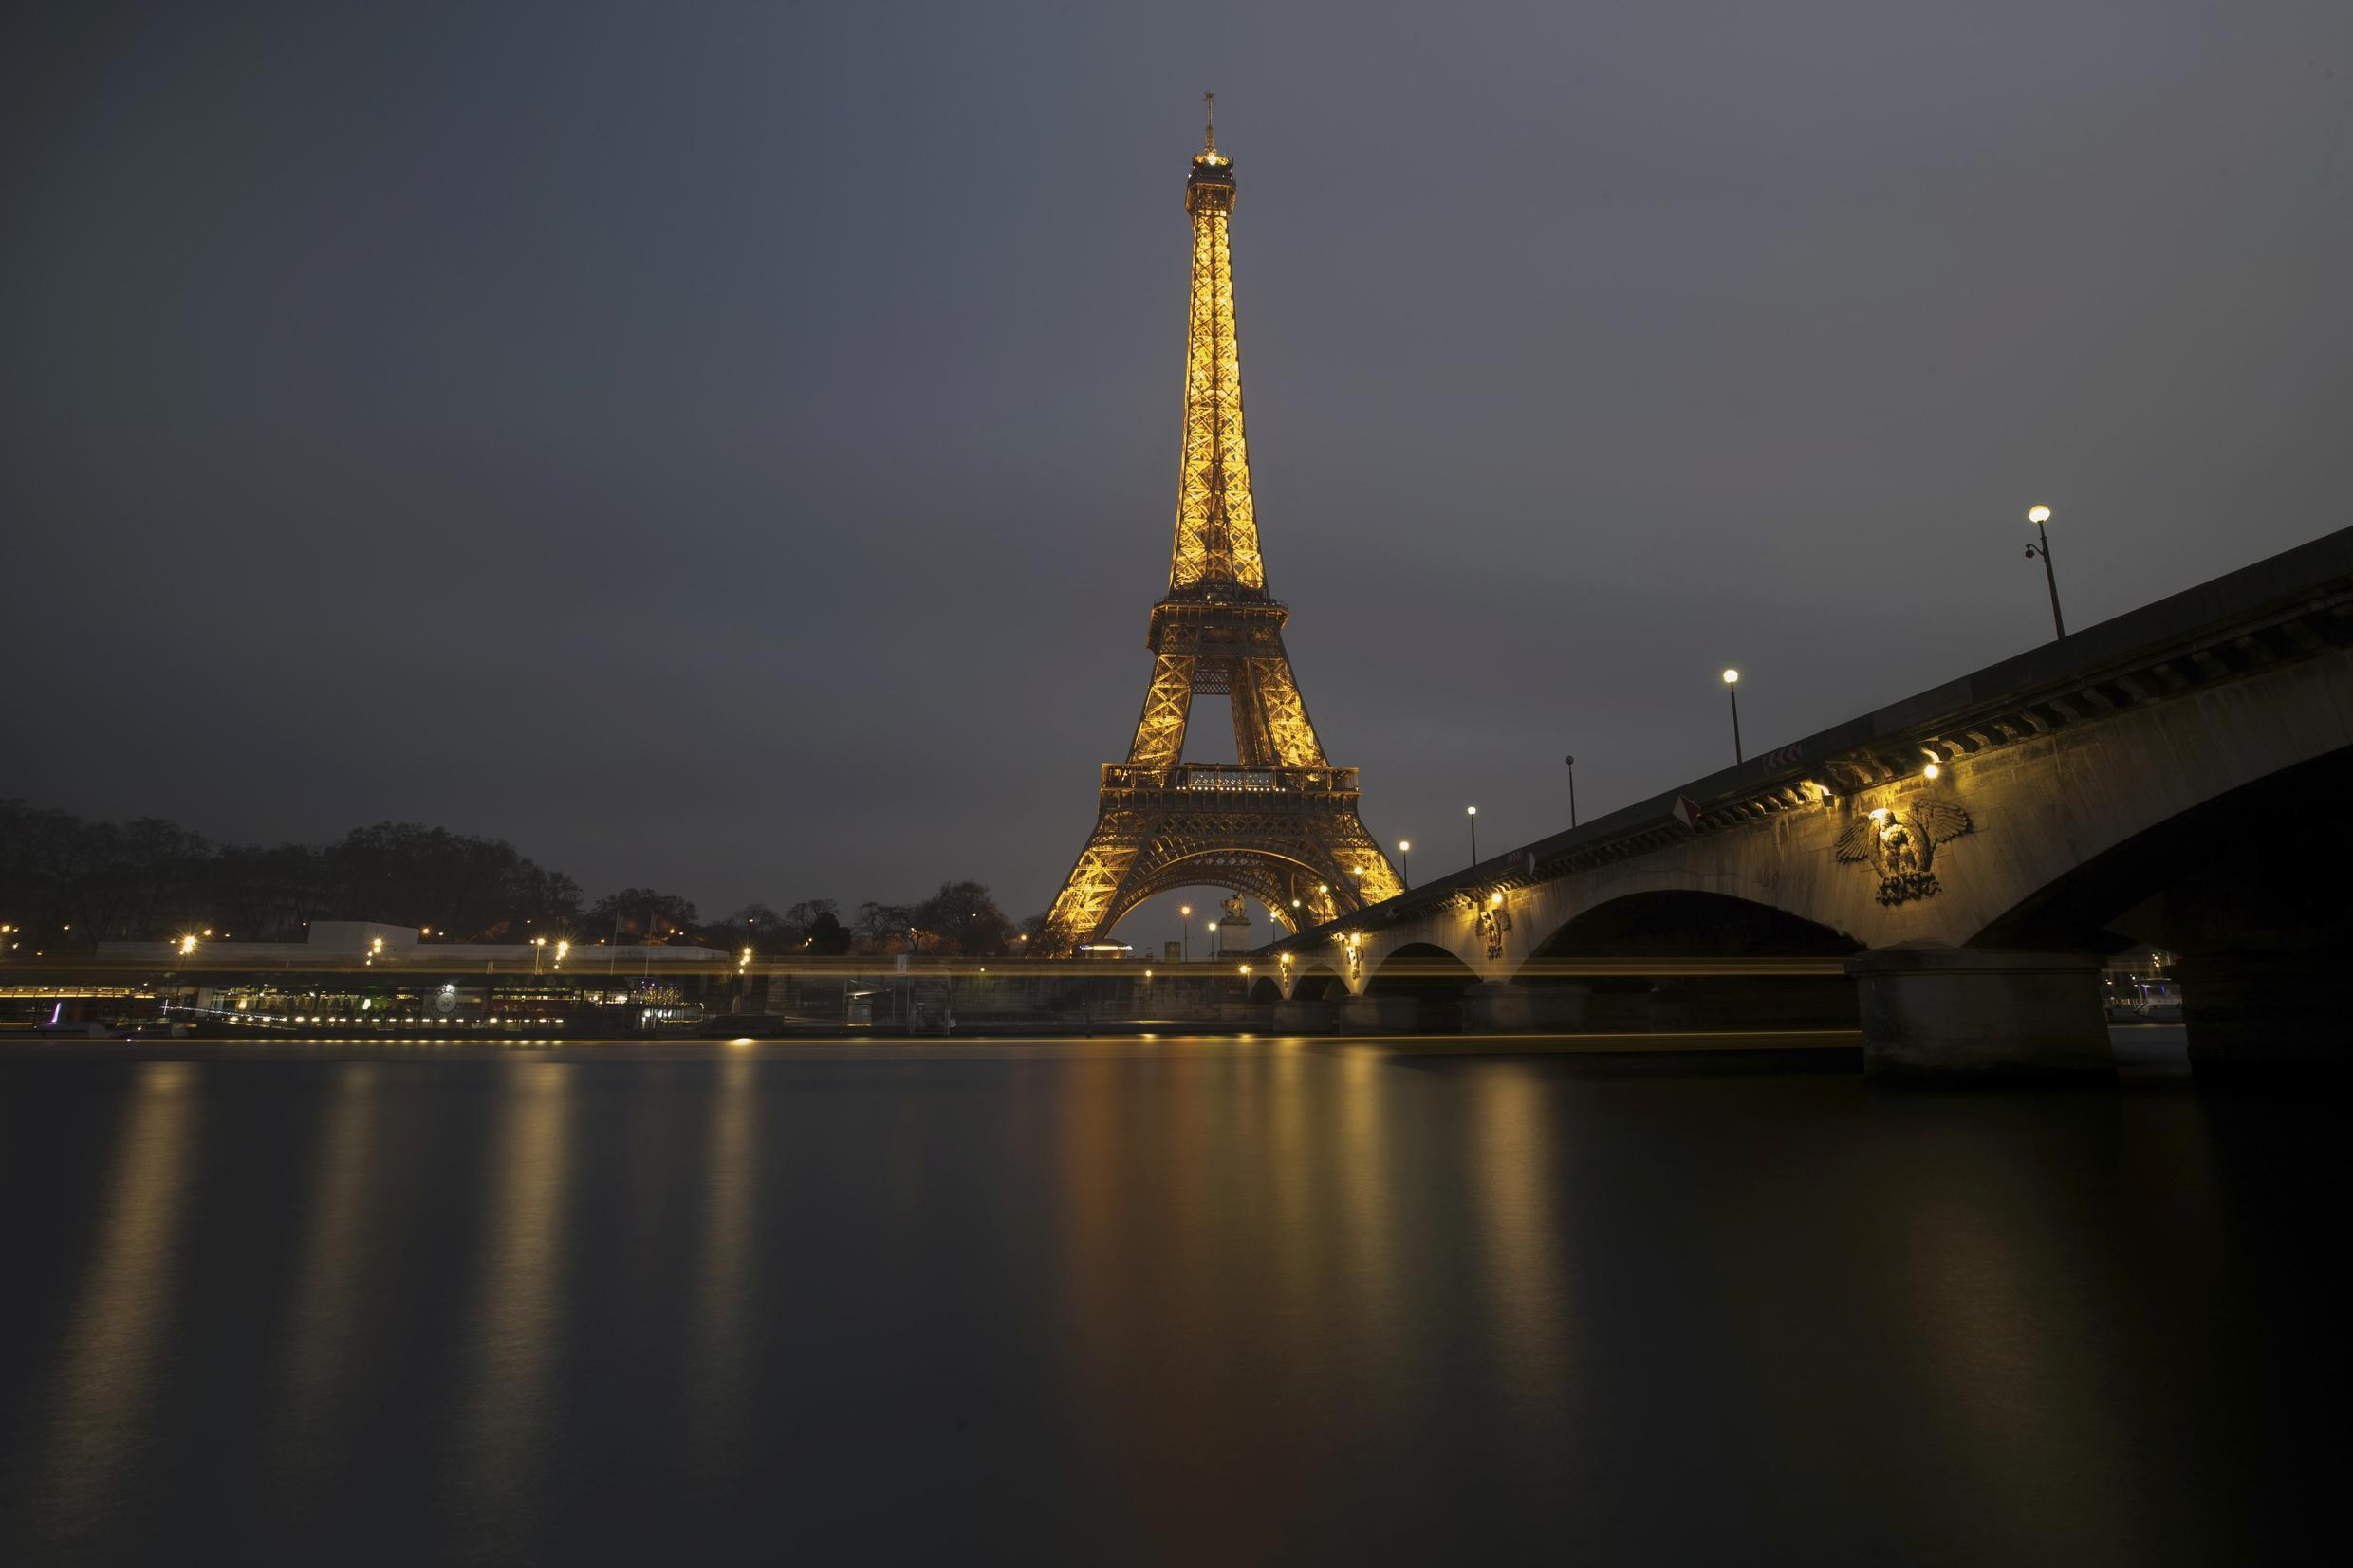 Eiffel Tower and the Seine River in Paris